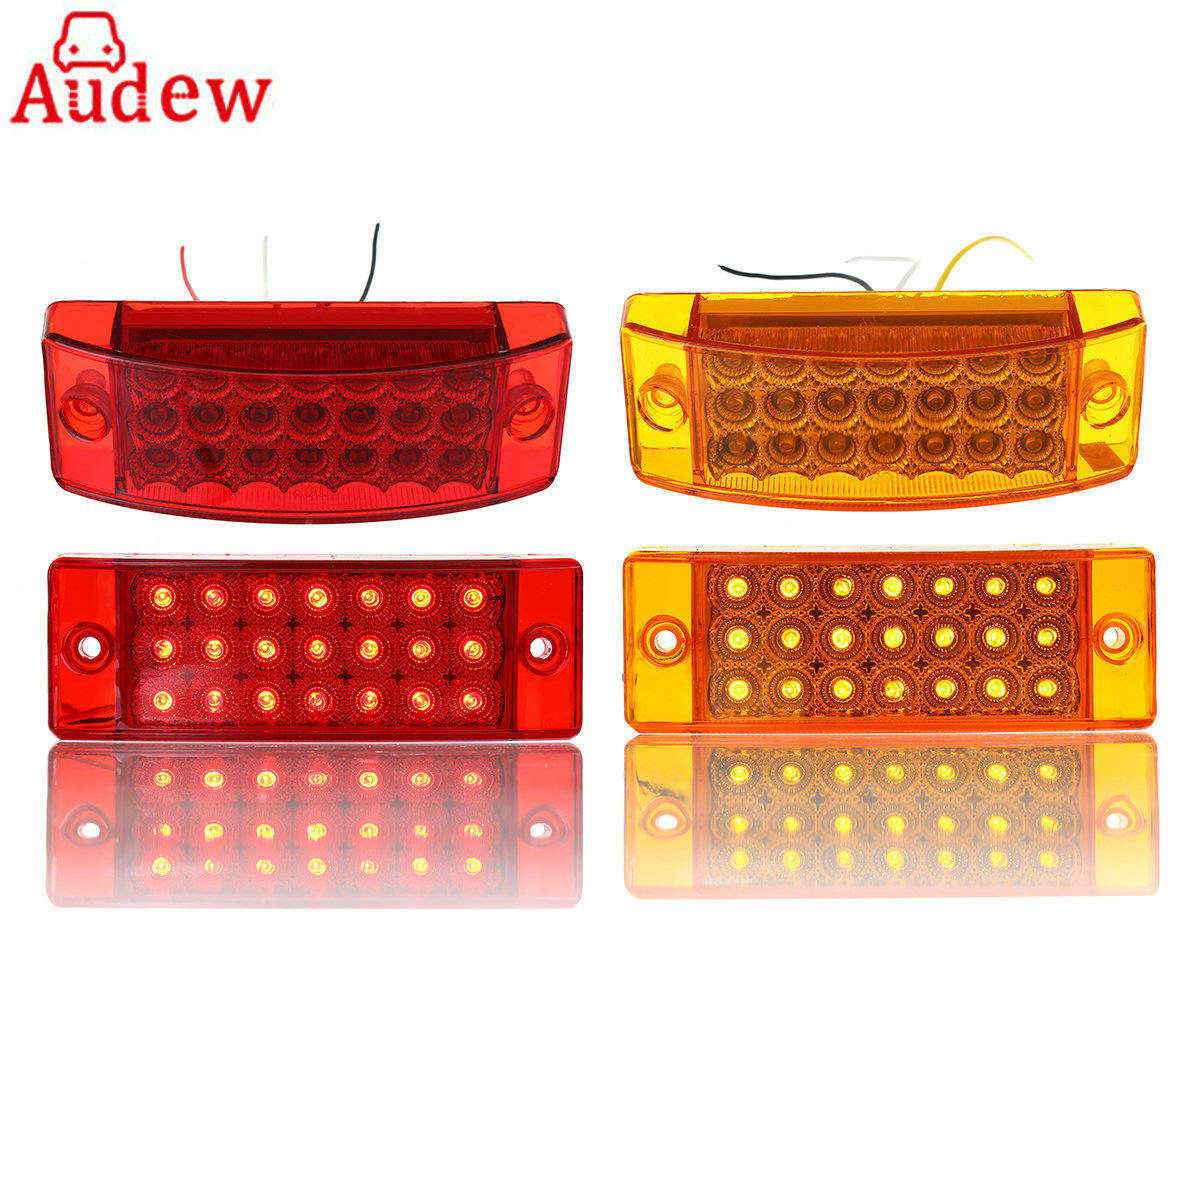 1Pcs 24V 6 Rectangular 21 LED Yellow red Car Side Marker Light Clearance Light 3 Wire Hi-Low Beam For Truck Trailer mr16 0 06w 5lm 630nm red light car clearance lamps silver red multi color 2 pcs